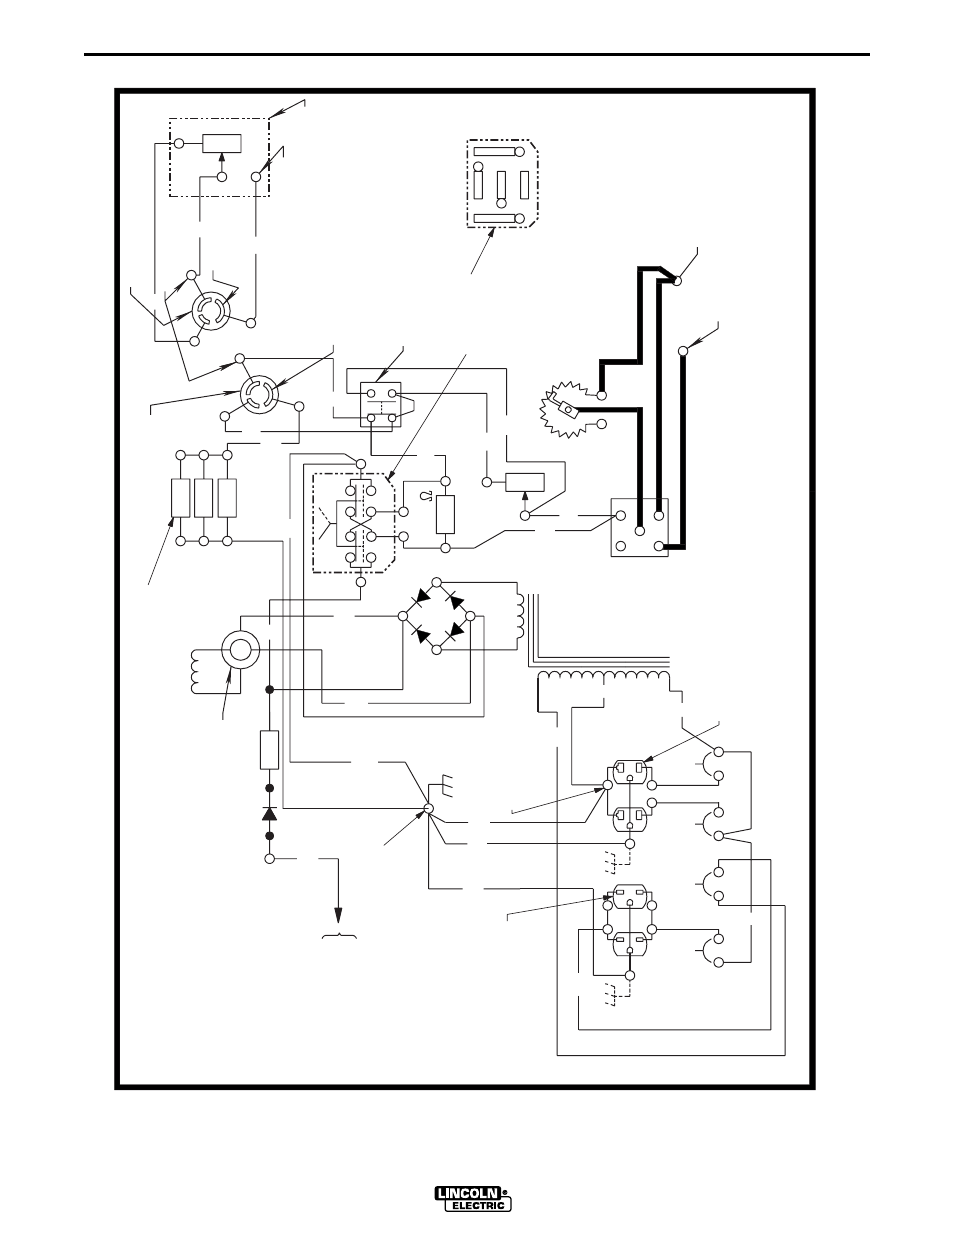 lincoln electric im581 sae400 page28 wiring diagrams, sae400 weld'n air, control wiring diagram sae lincoln sae 400 wiring diagram at creativeand.co